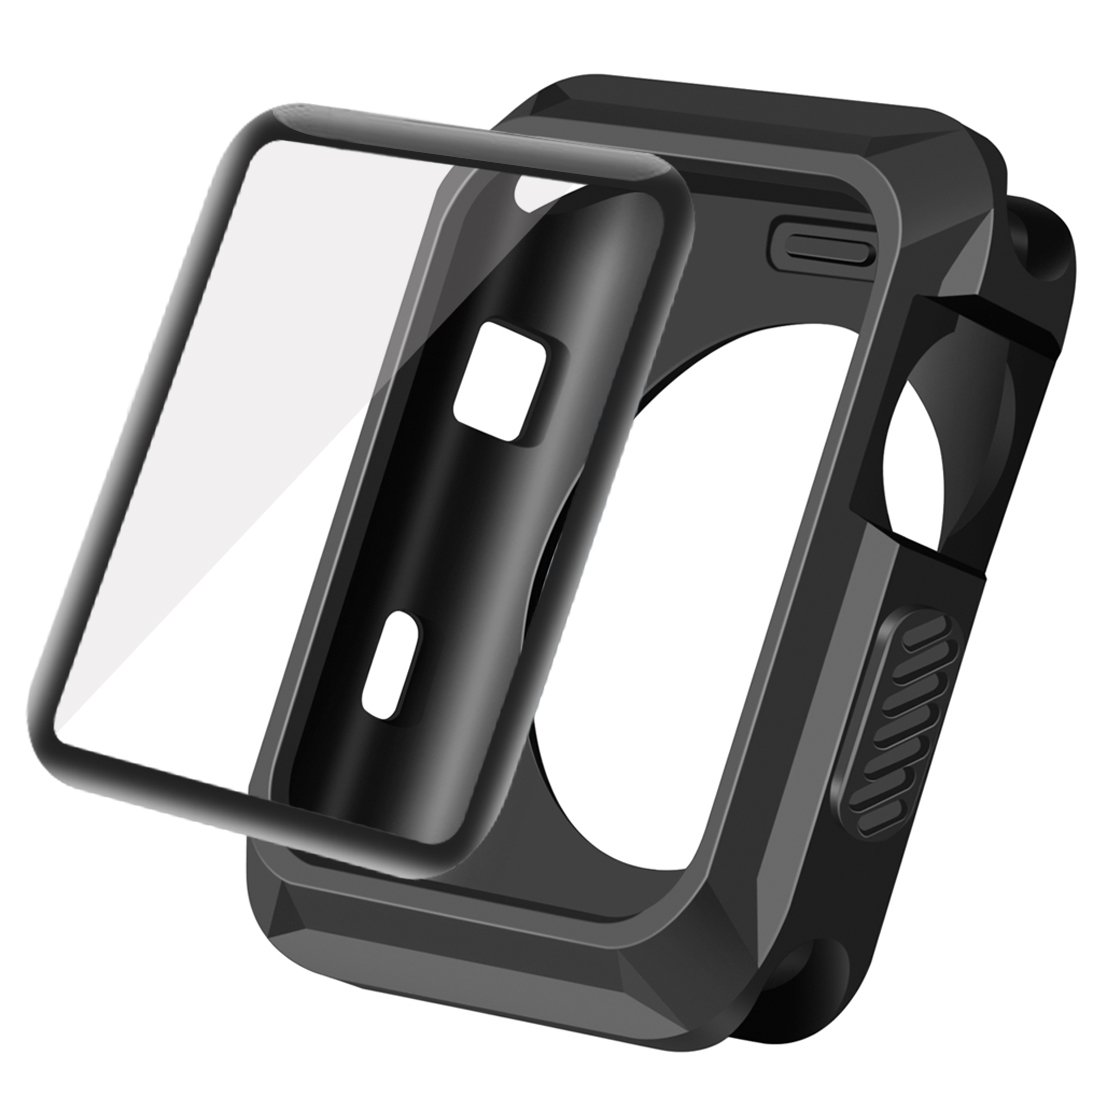 Apple Watch Case 42mm, Wolait Rugged Protective Case + Tempered Glass Screen Protector for Apple Watch Series 3/2/1 (Black)